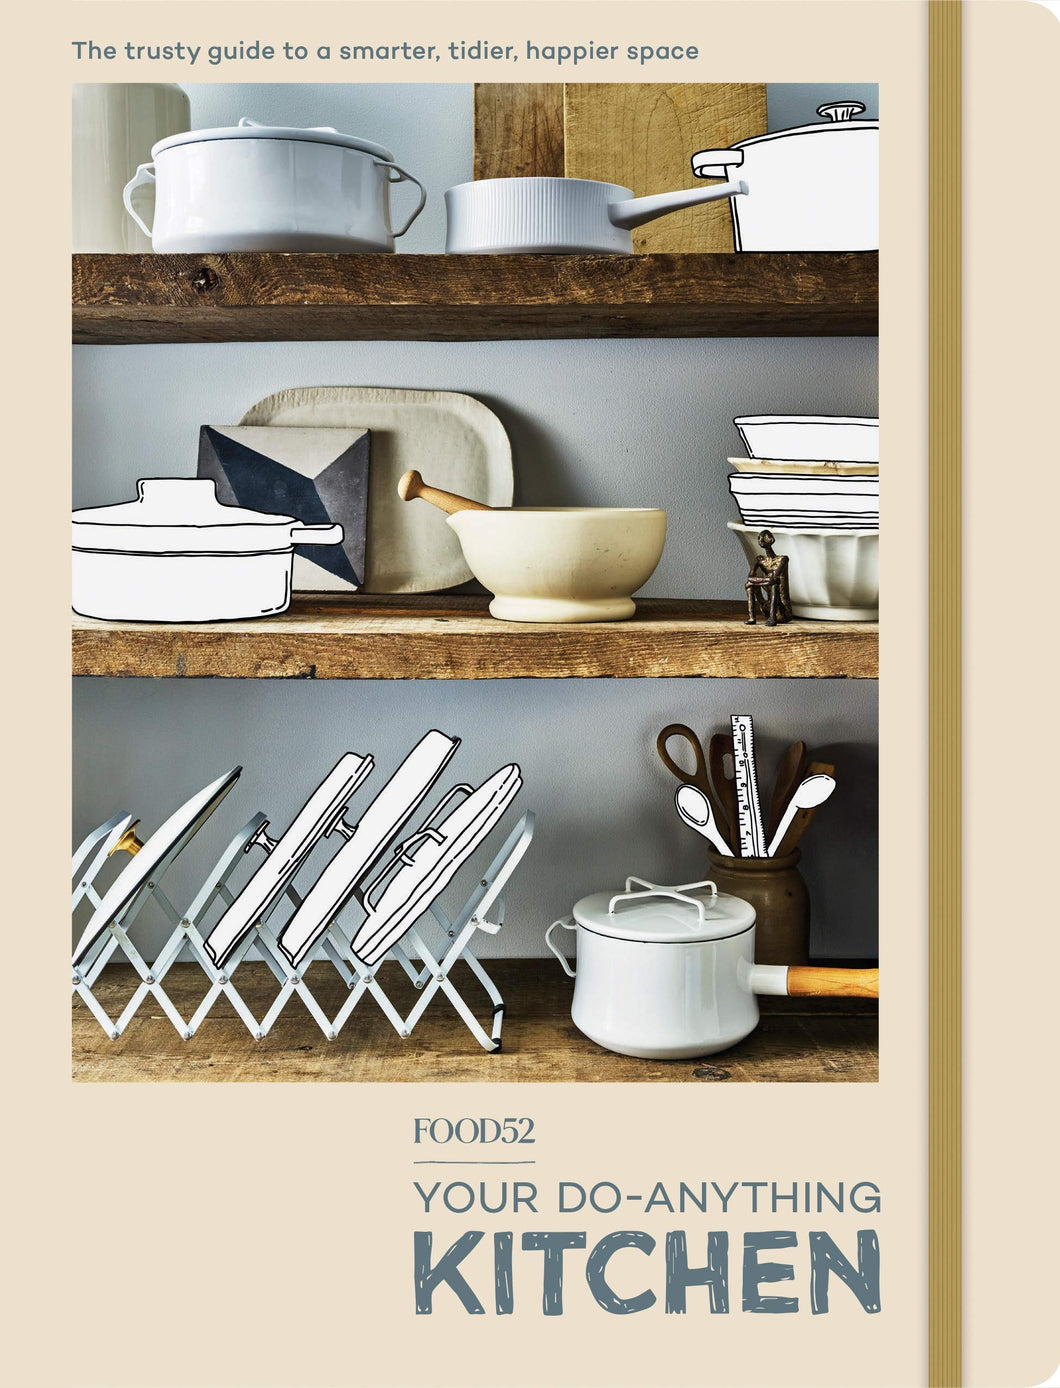 Your Do-Anything Kitchen: The Trusty Guide to a Smarter, Tidier, Happier Space